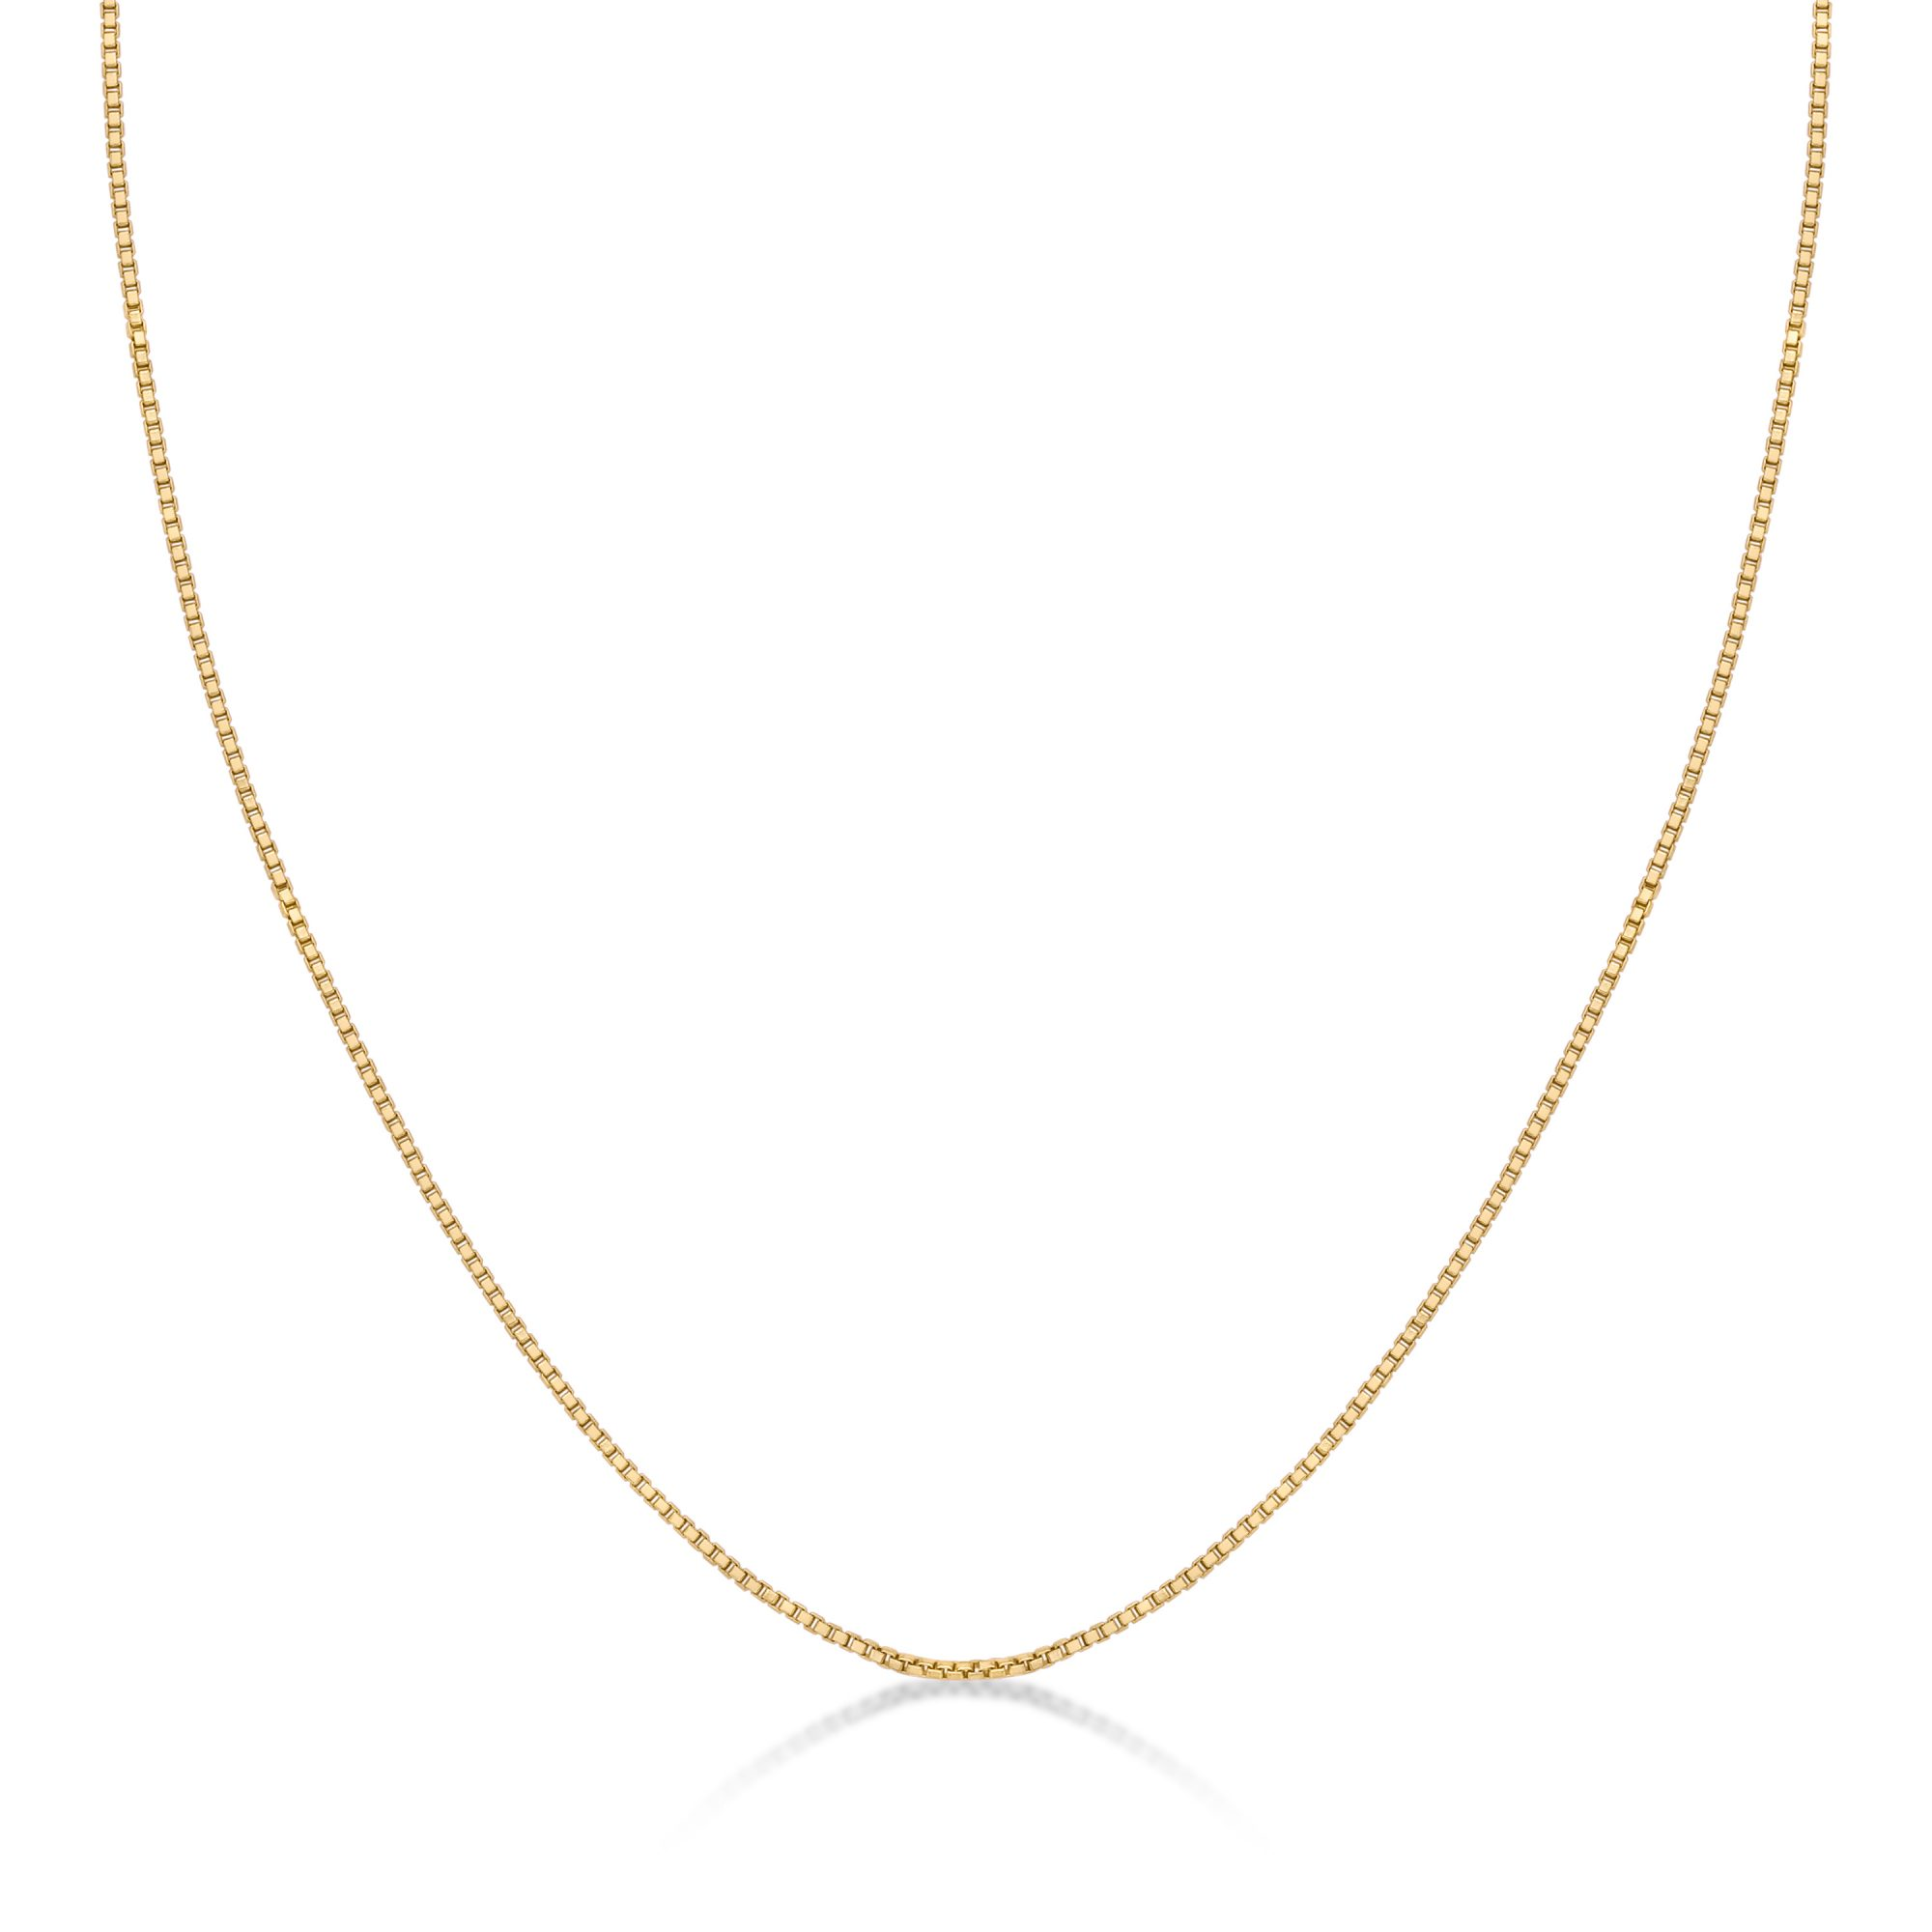 14 Karat Yellow Gold Replacement 0.6 MM Box Chain - 18 inch with Spring Ring Clasp